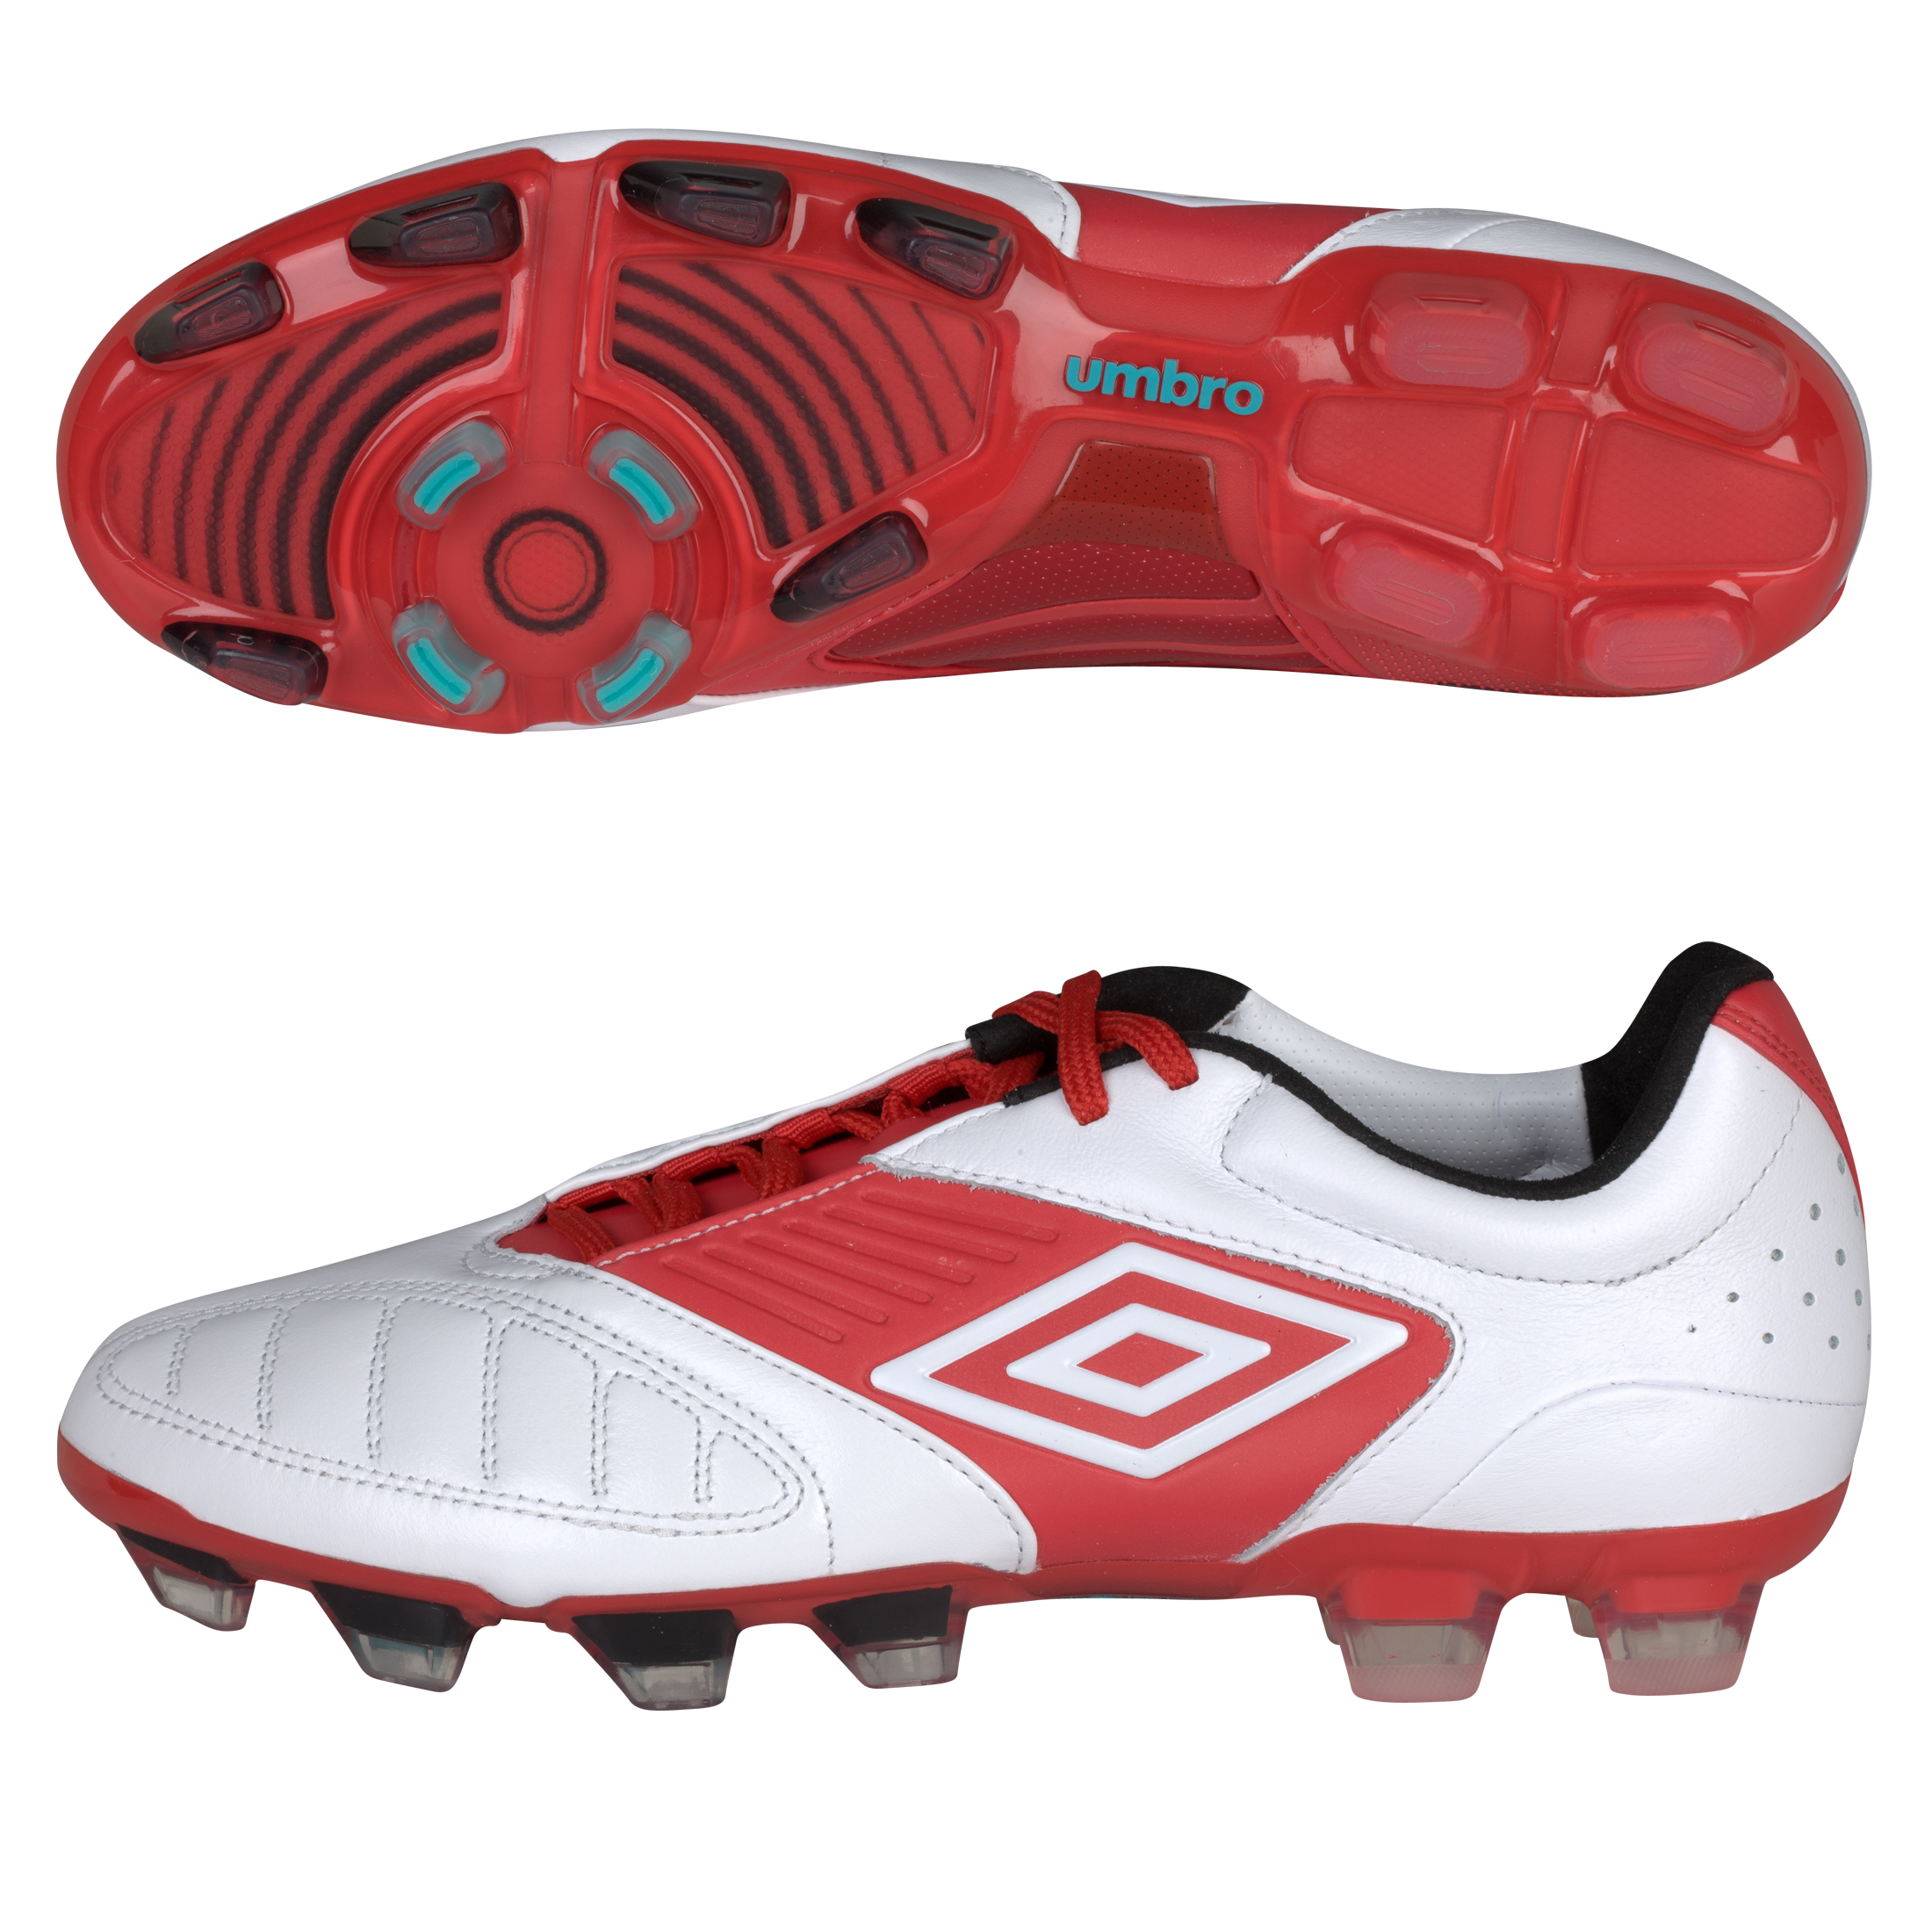 Geometra Pro FG White/True Red